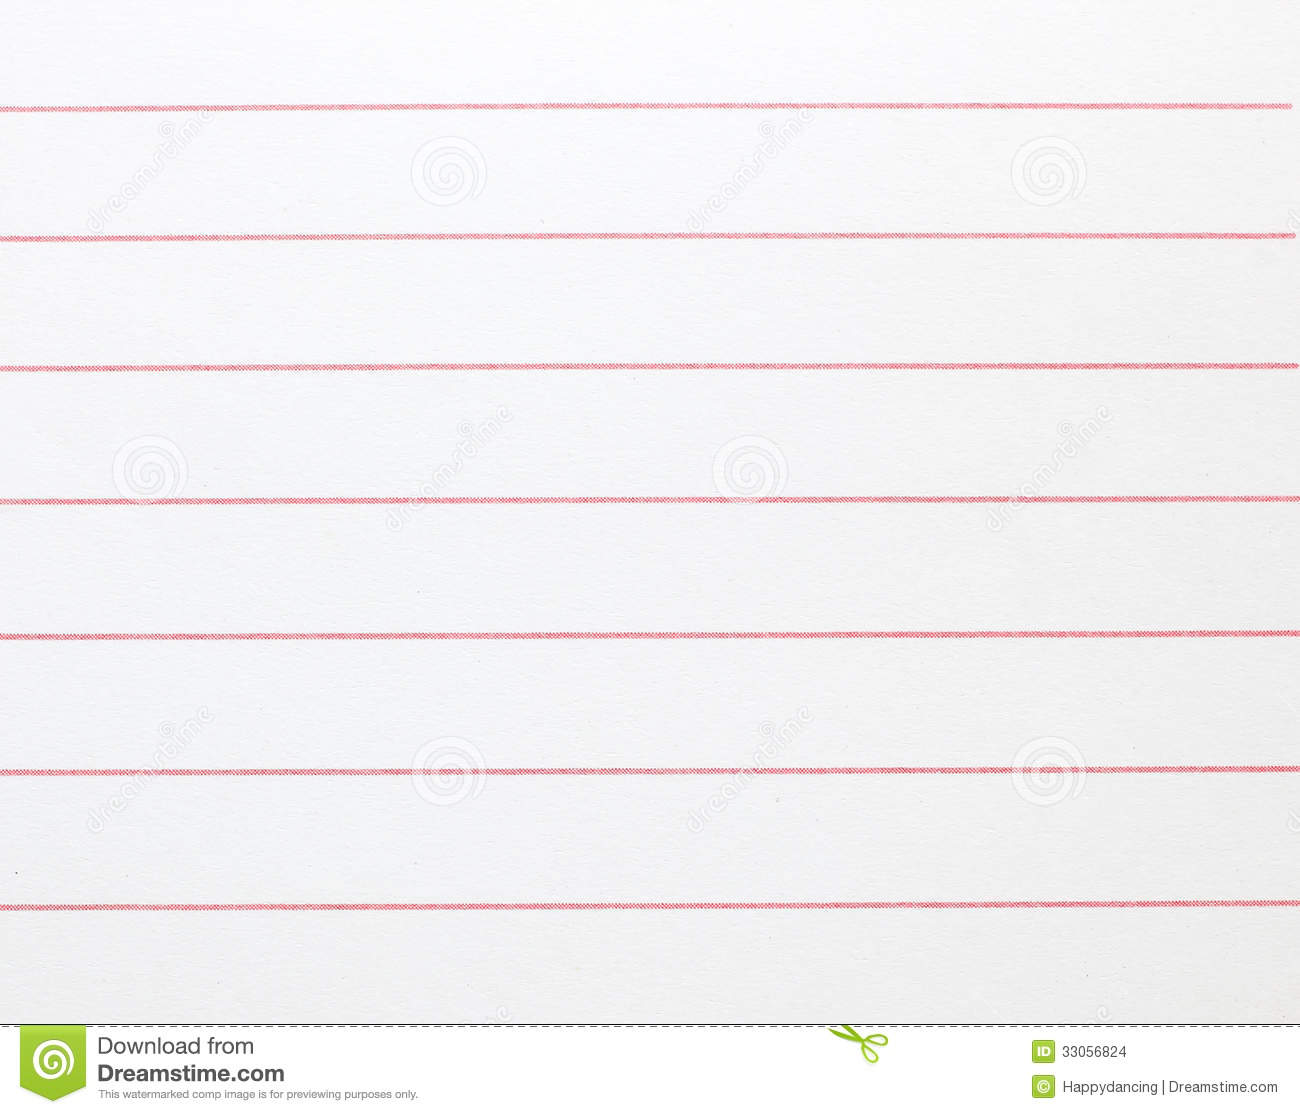 blank lined notebook paper background stock photo - image of lined